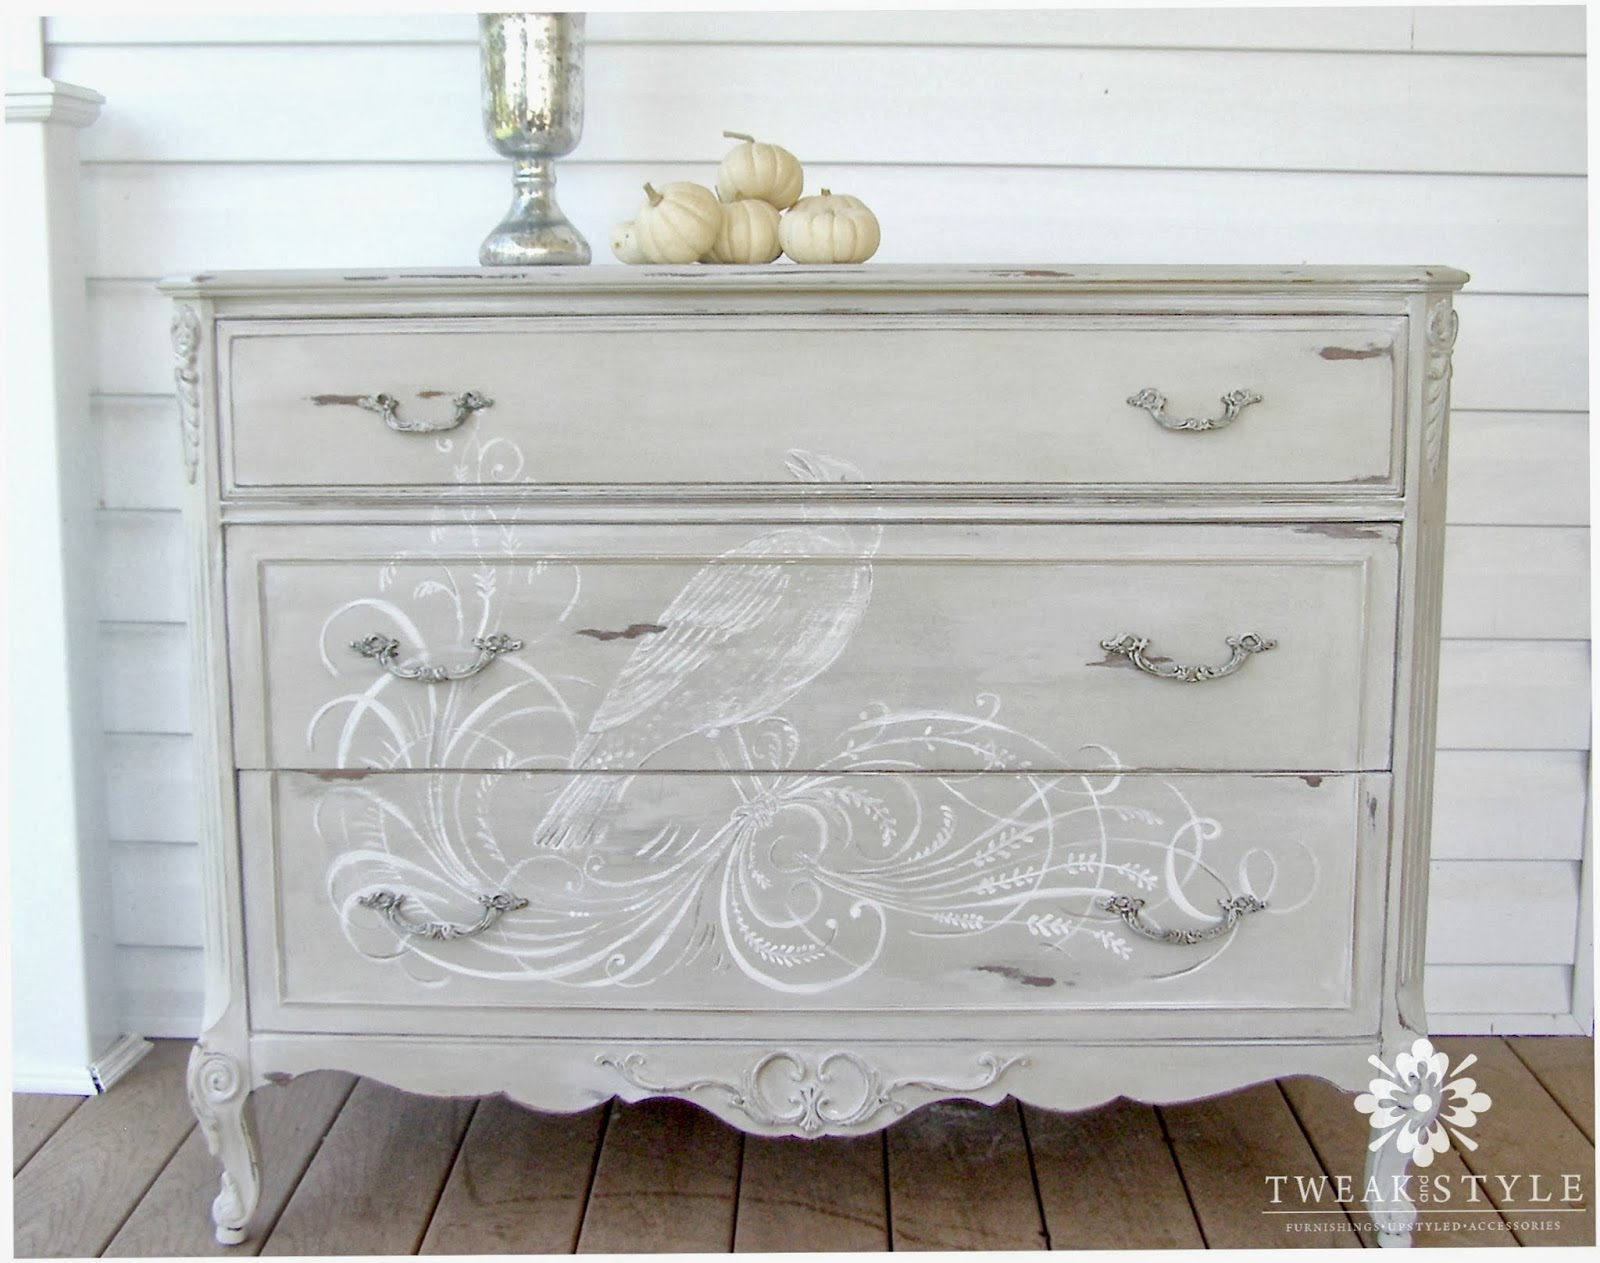 Tweak Style Blog The Hand Painted Dresser How To Add A Hand Painted E